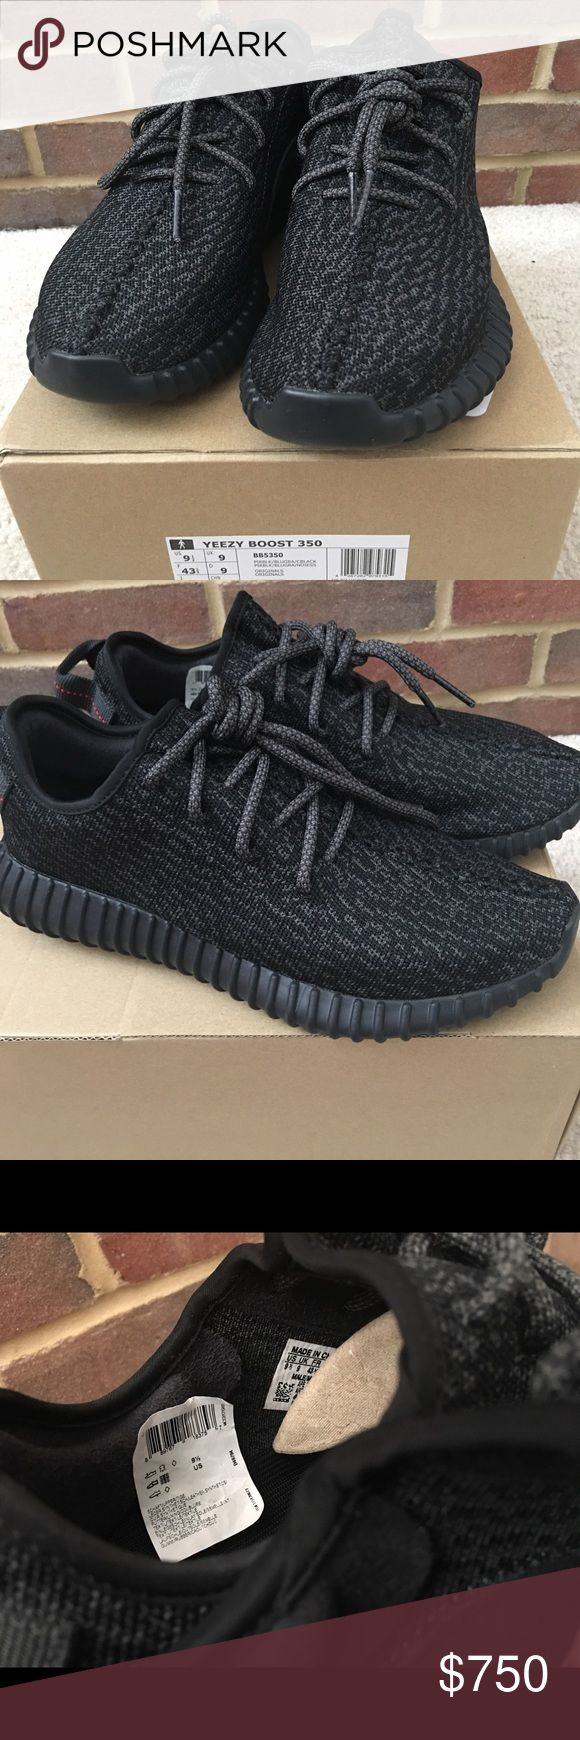 Yeezy boost Pirate Black (Deadstock) Please read. Selling this wonderful pair of yeezy version 1. Wondering why I sell this? I already have zebras and oreos. I dont need this. Feel free to offer. Not accepting low offers. Thank you.   PS. The label was tear-off by my little brother. Adidas Shoes Sneakers